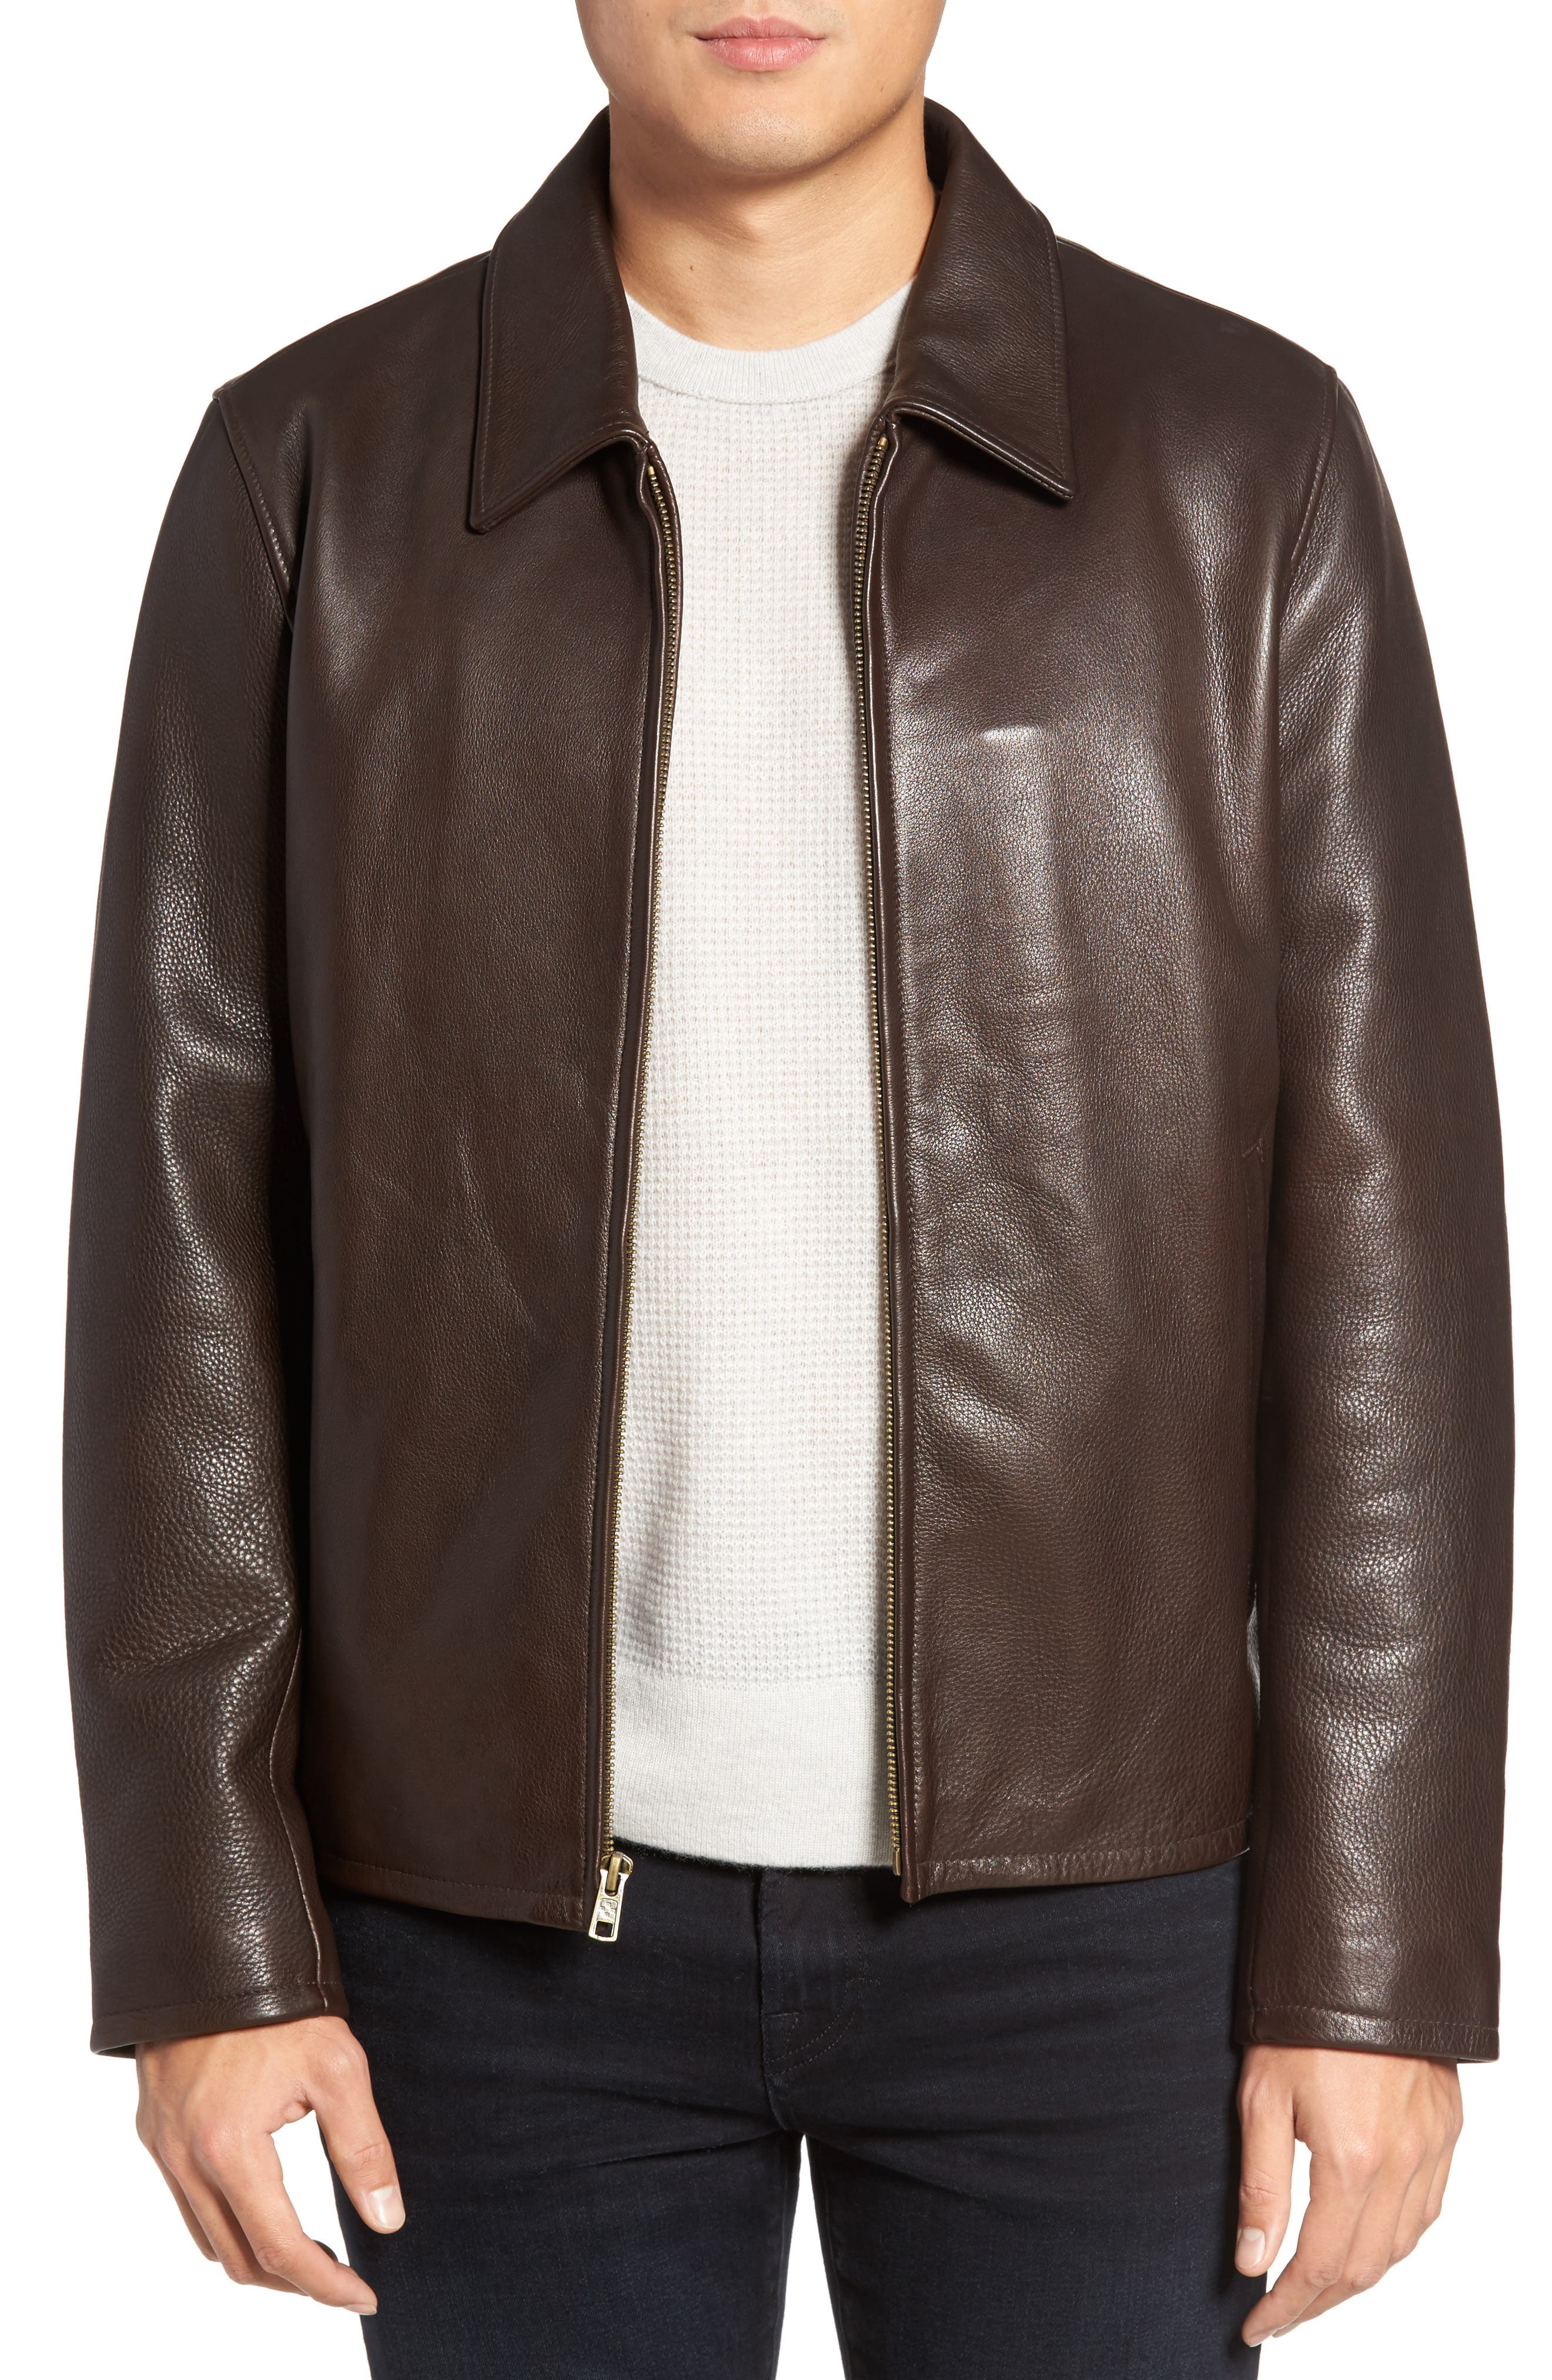 Alternate Image 1 Selected - Vince Camuto Leather Zip Front Jacket